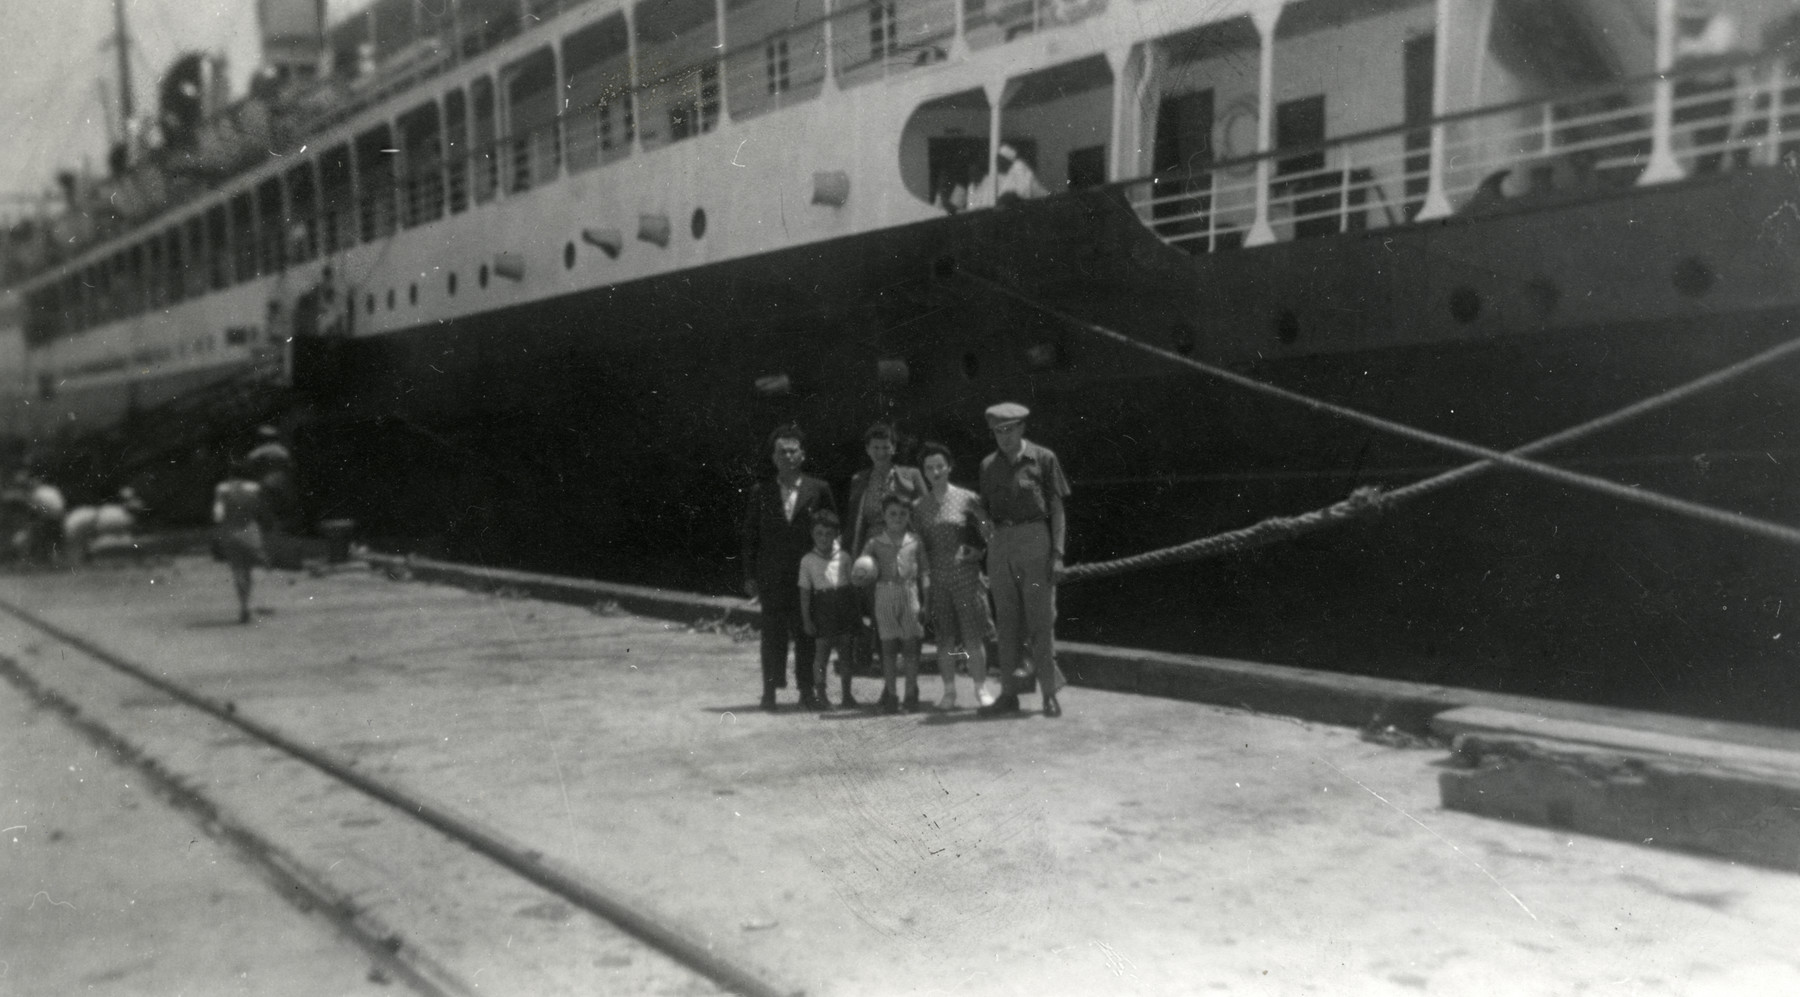 The Salomon family poses on the dock in New York prior to boarding the Algonquin which will take them to the Dominican Republic.